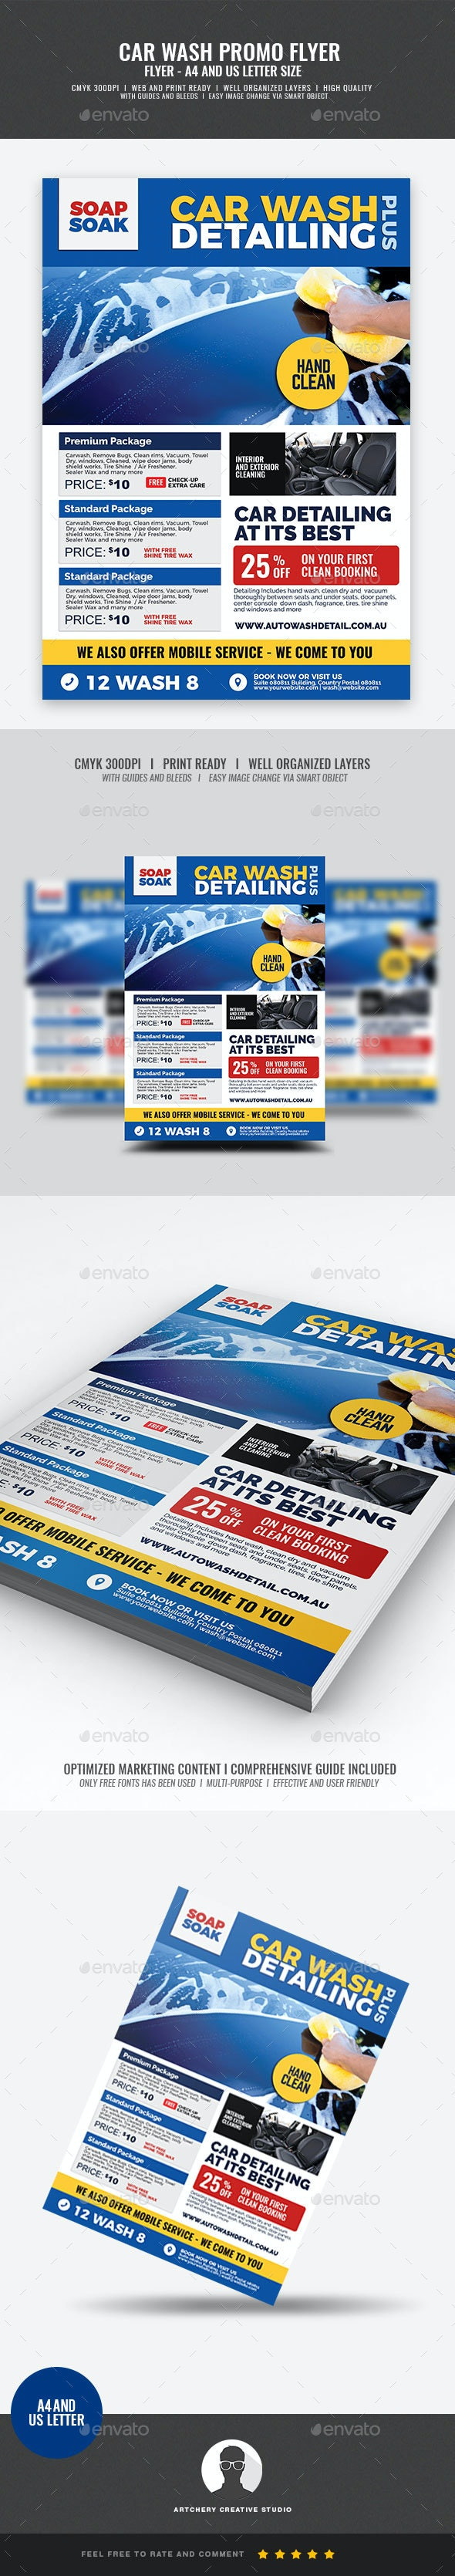 Car Wash Auto Cleaning Service Flyer - Corporate Flyers